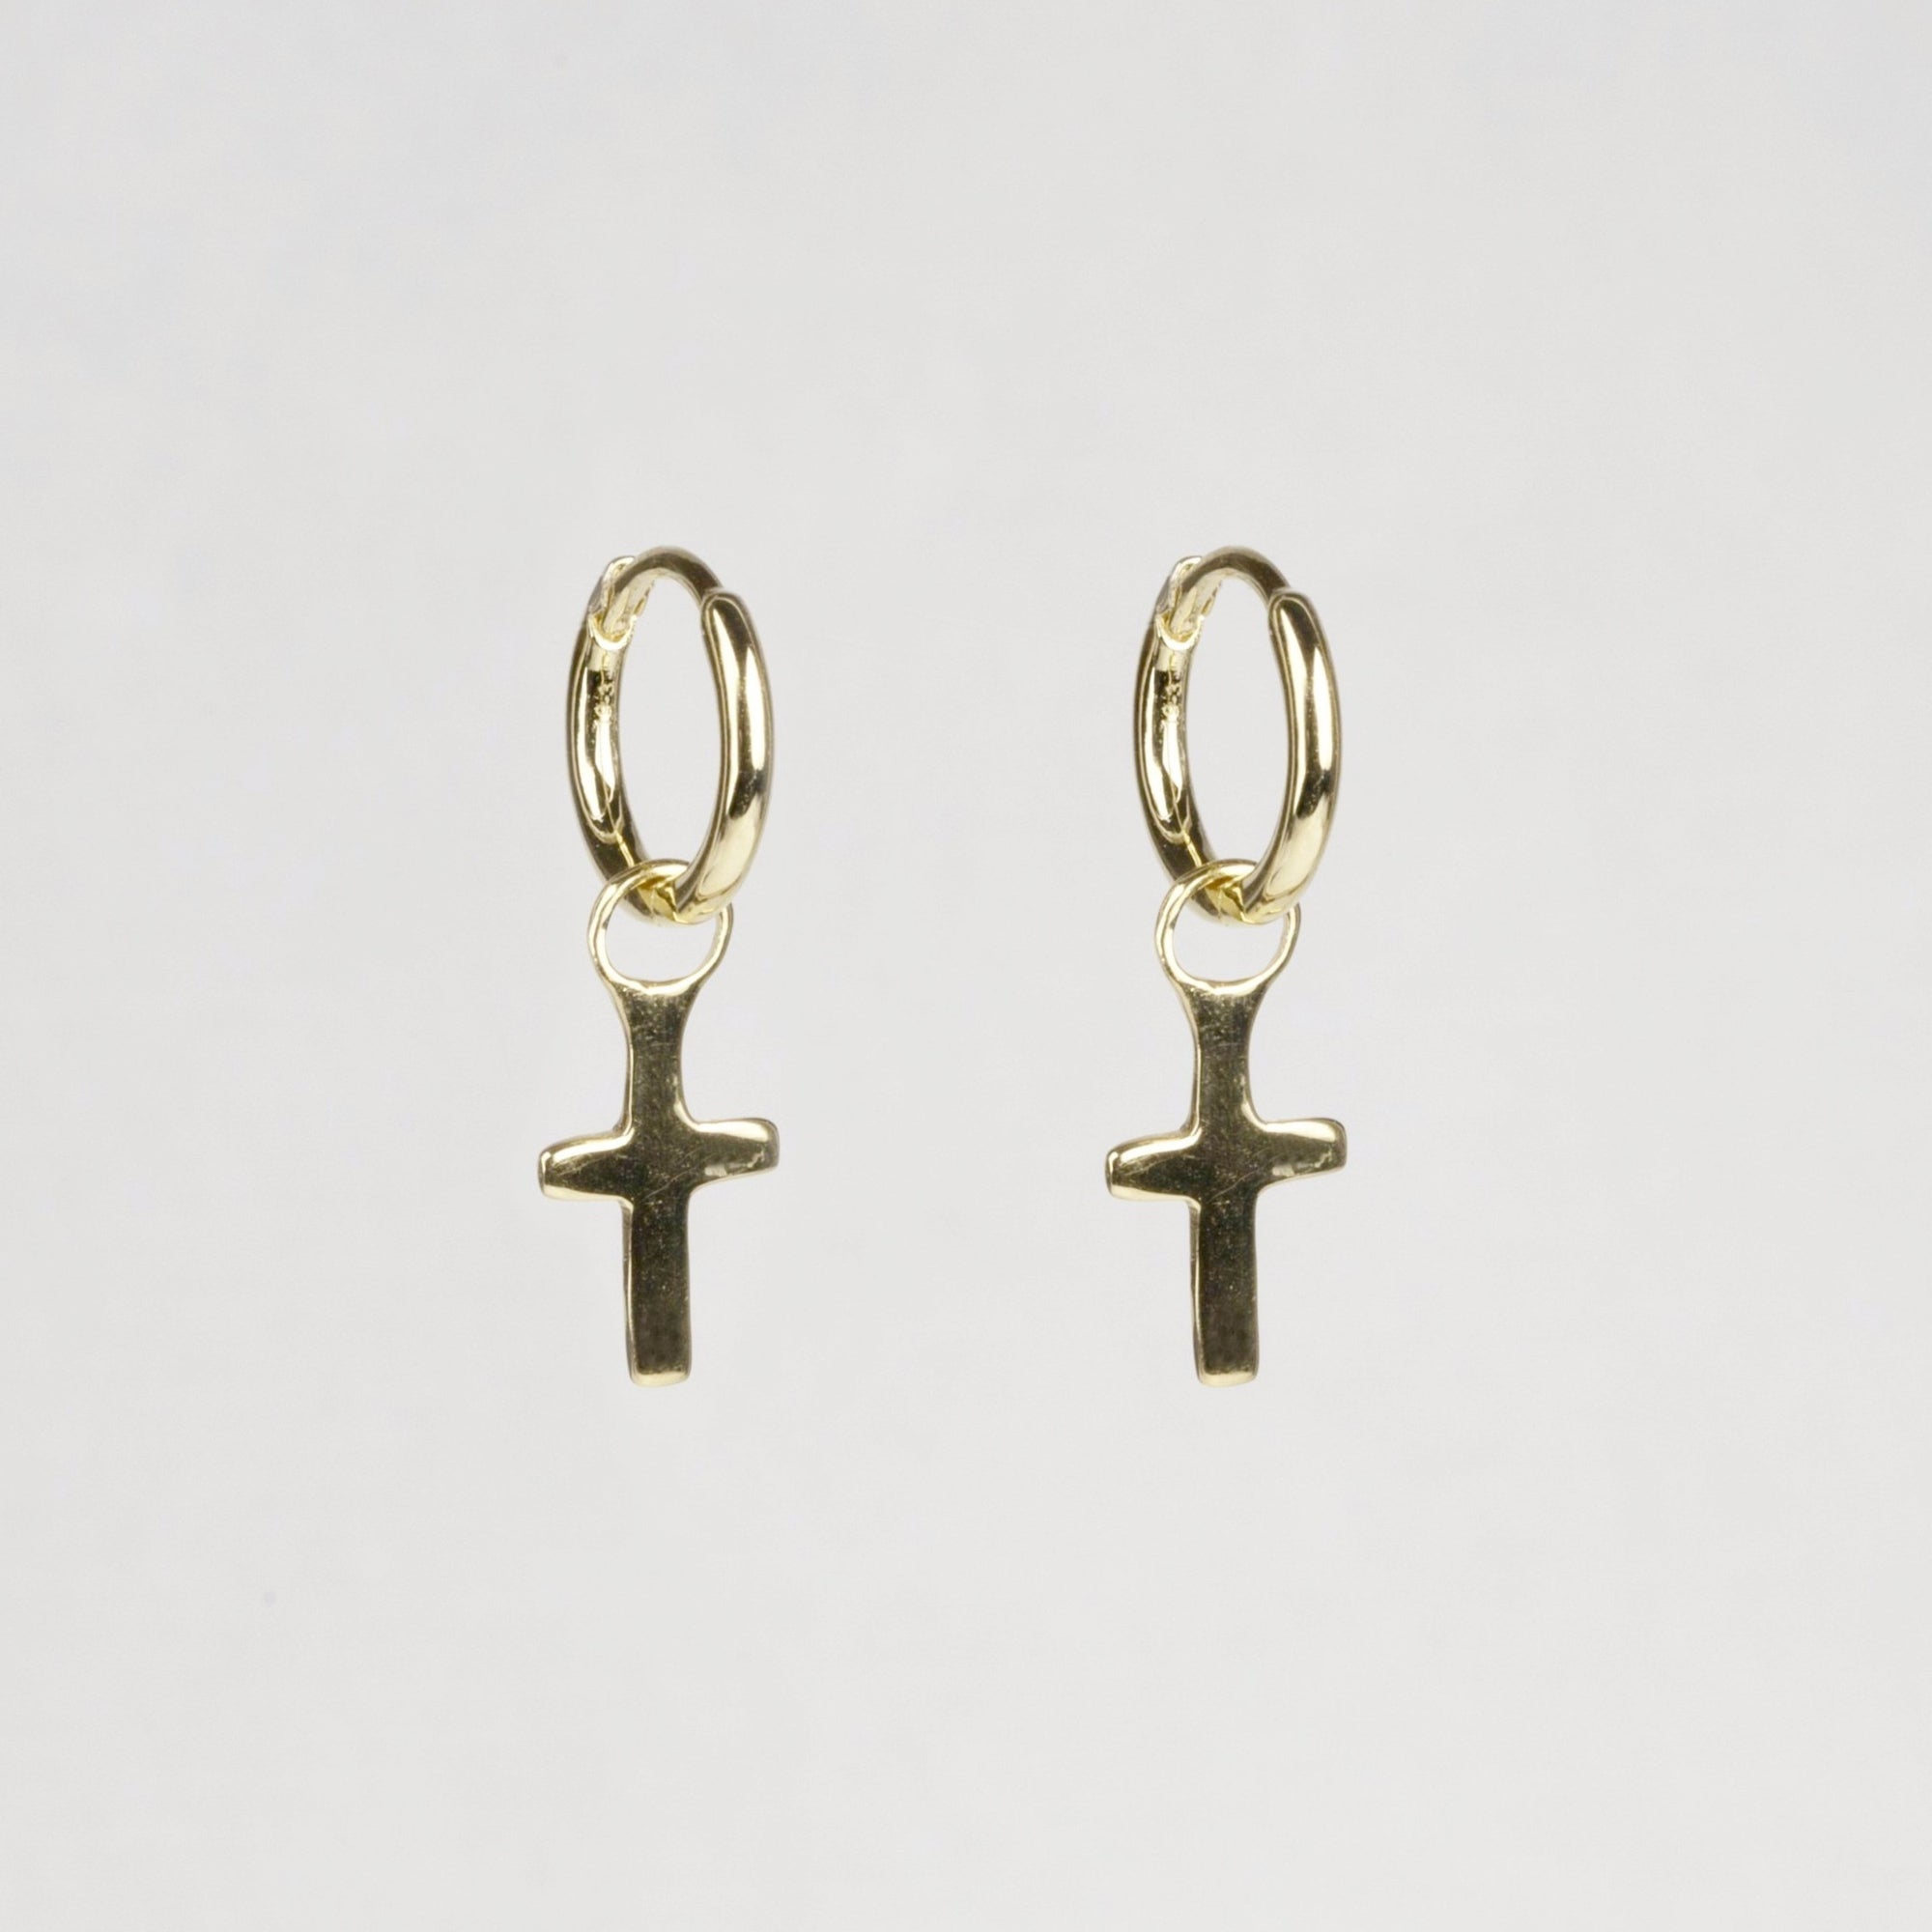 felt's Charmed Hoop Earrings - Crosses